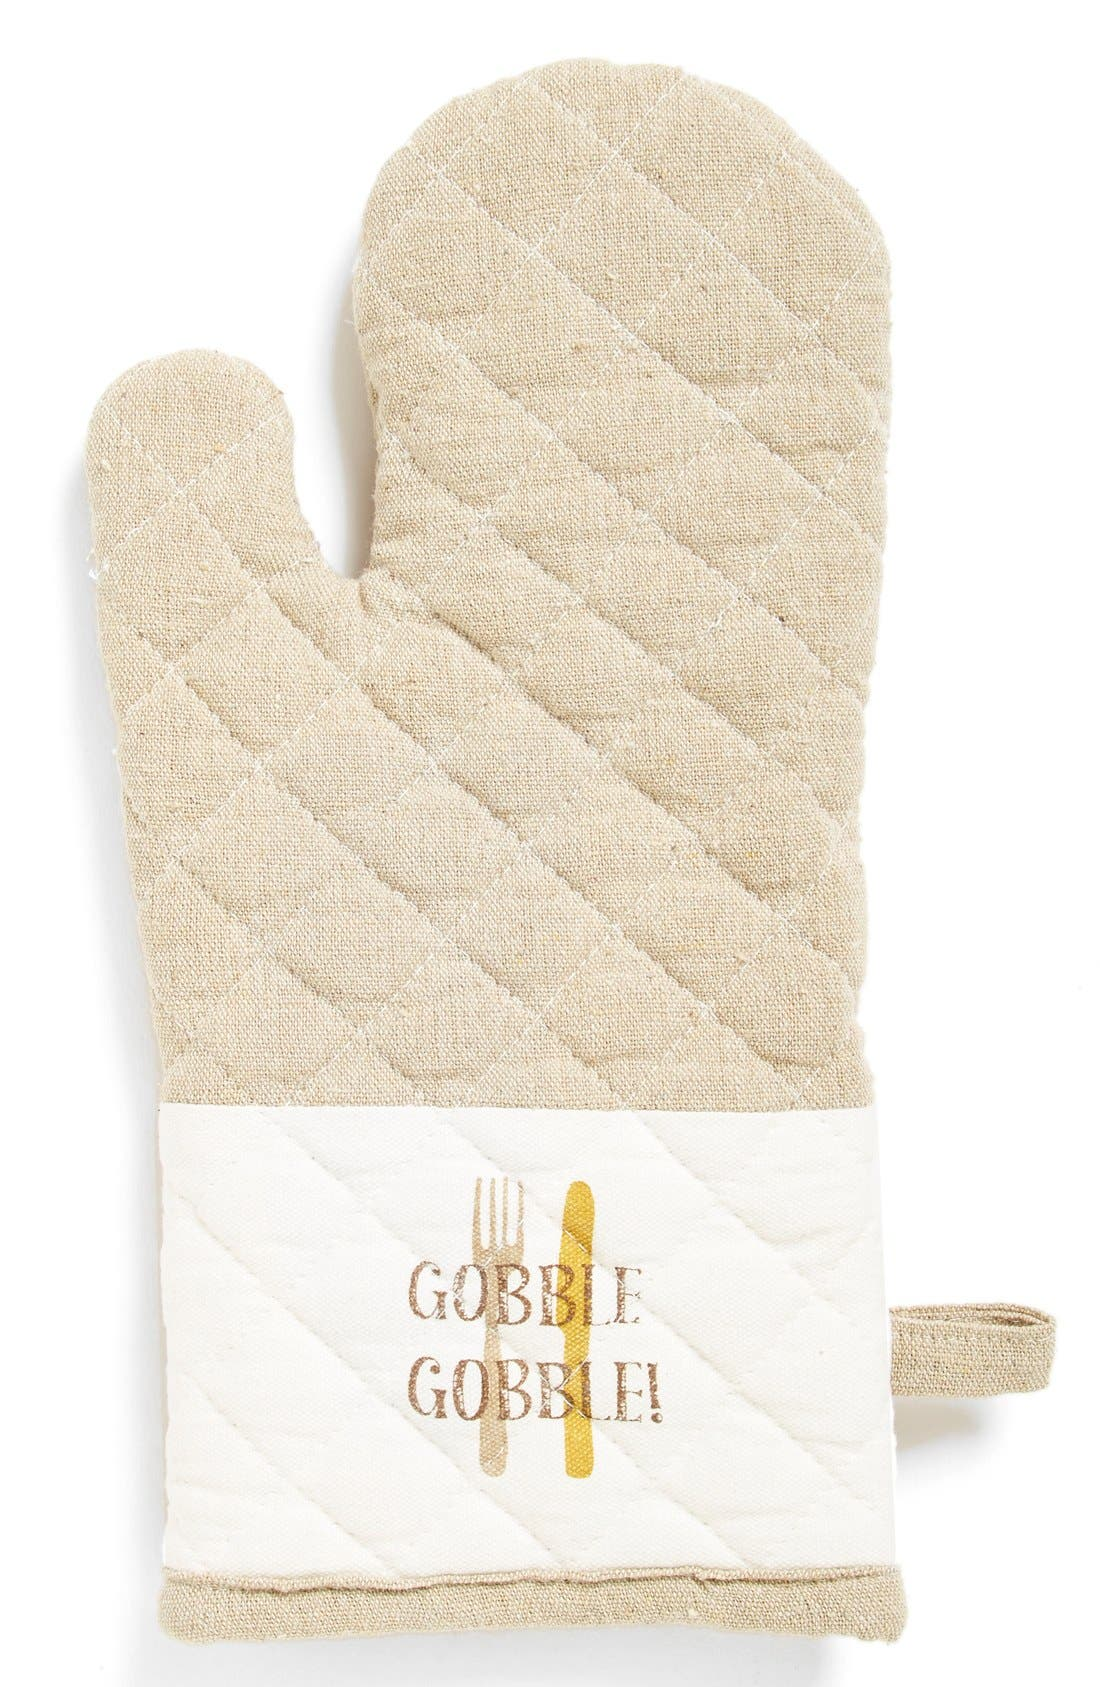 'Gobble Gobble!' Quilted Oven Mitt,                             Main thumbnail 1, color,                             250